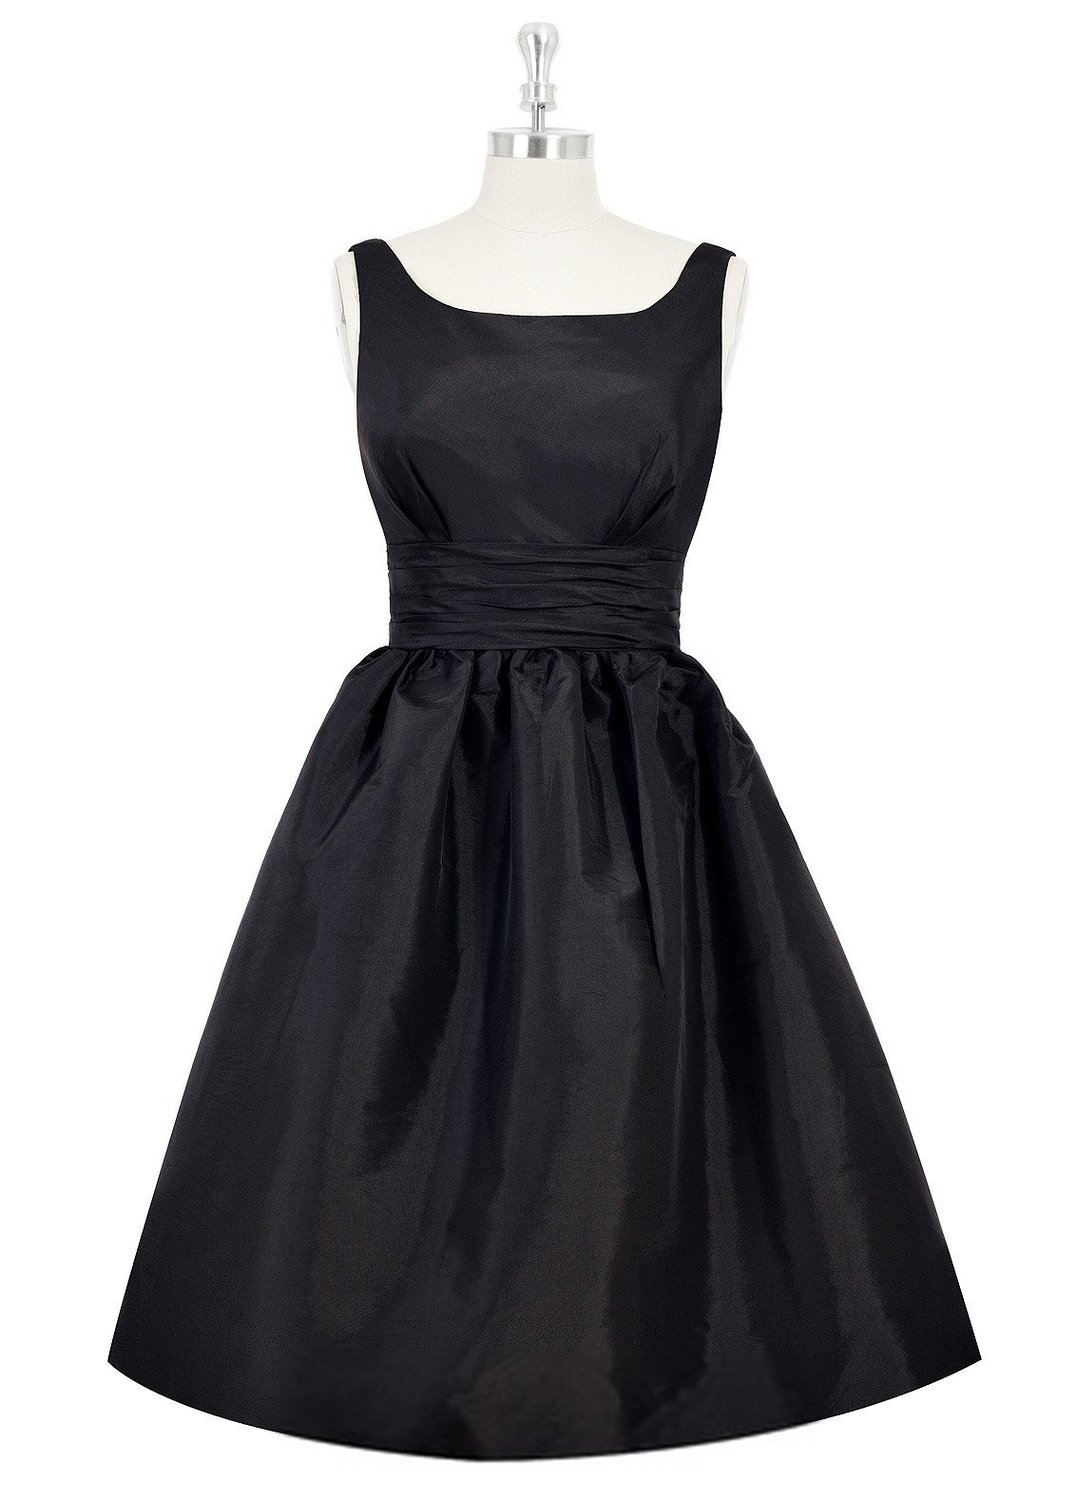 Women S Knee Length Satin Frock Scooped Back Swingy Black